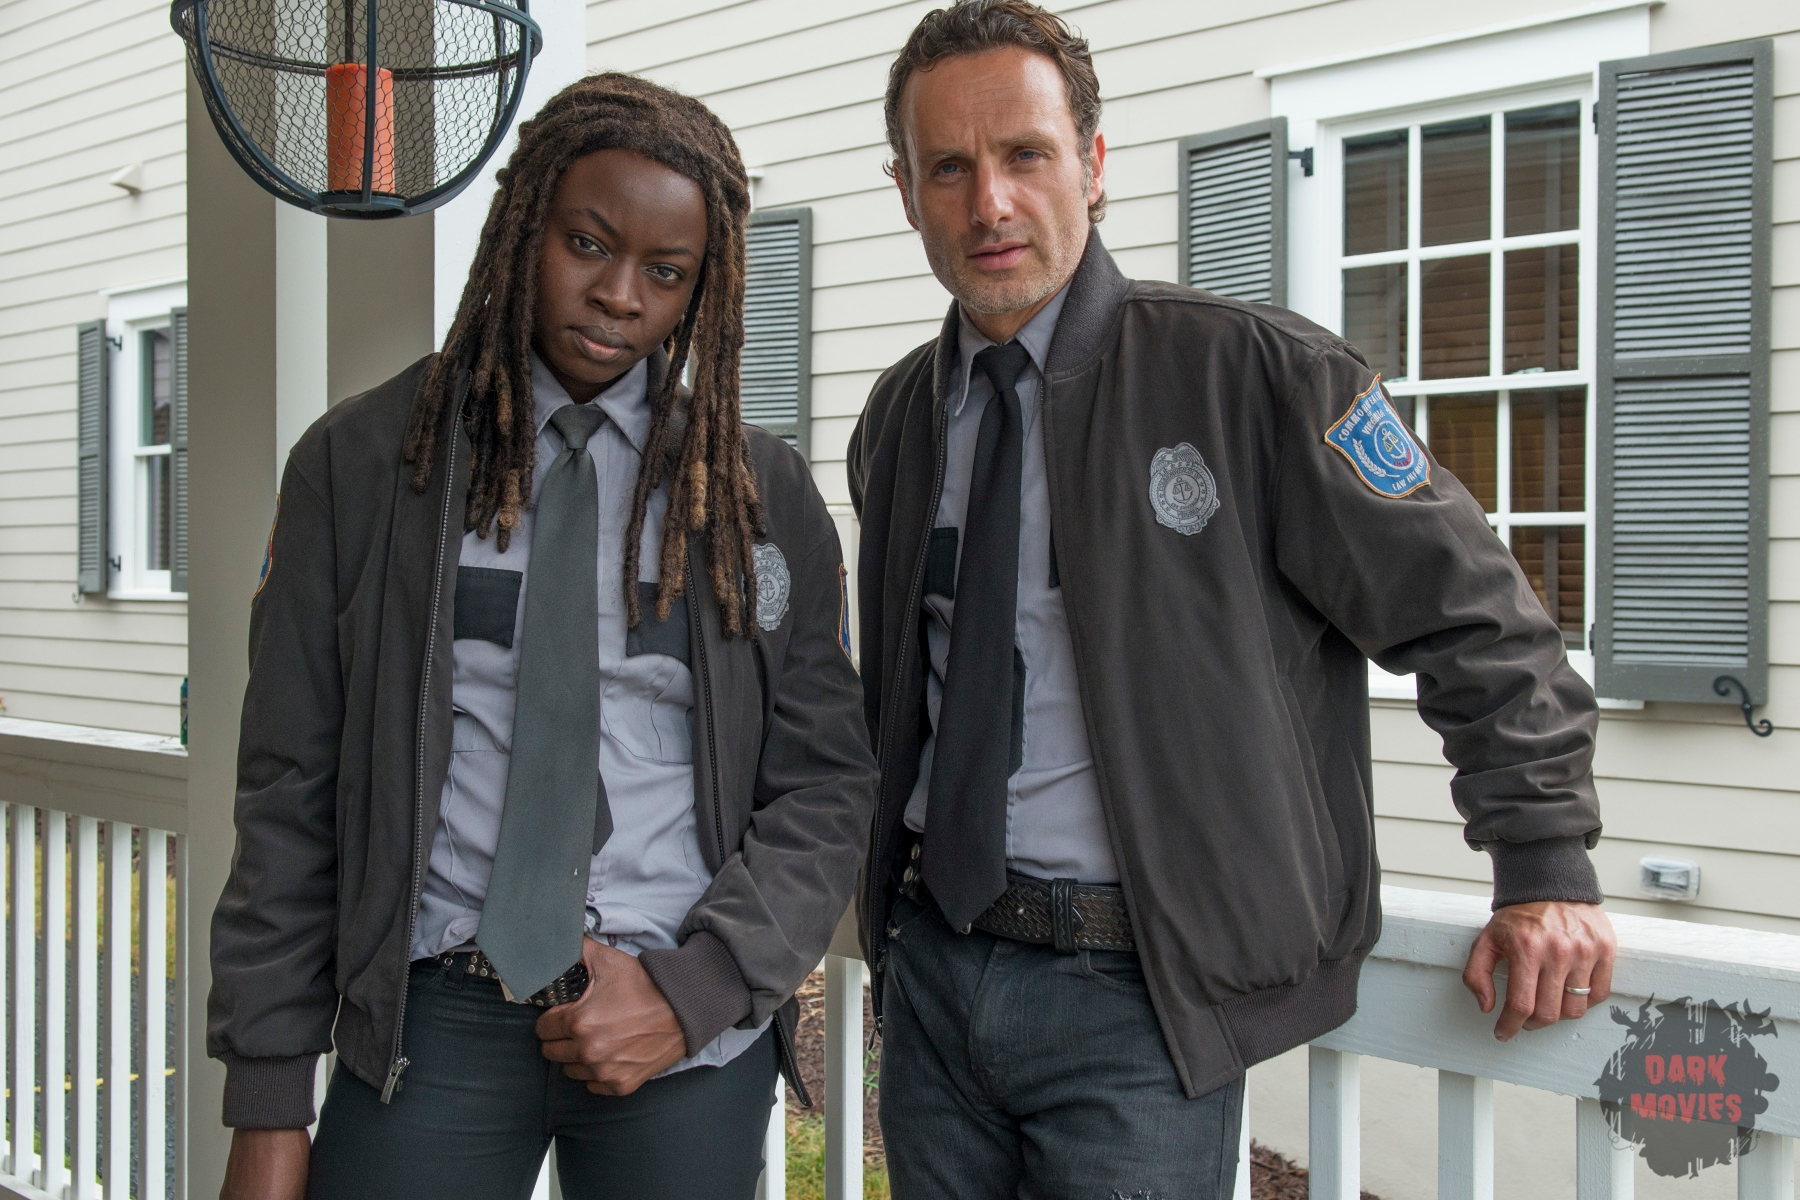 Danai Gurira and Andrew Lincoln - The Walking Dead _ Season 5, Episode 13 _ BTS - Photo Credit: Gene Page/AMC